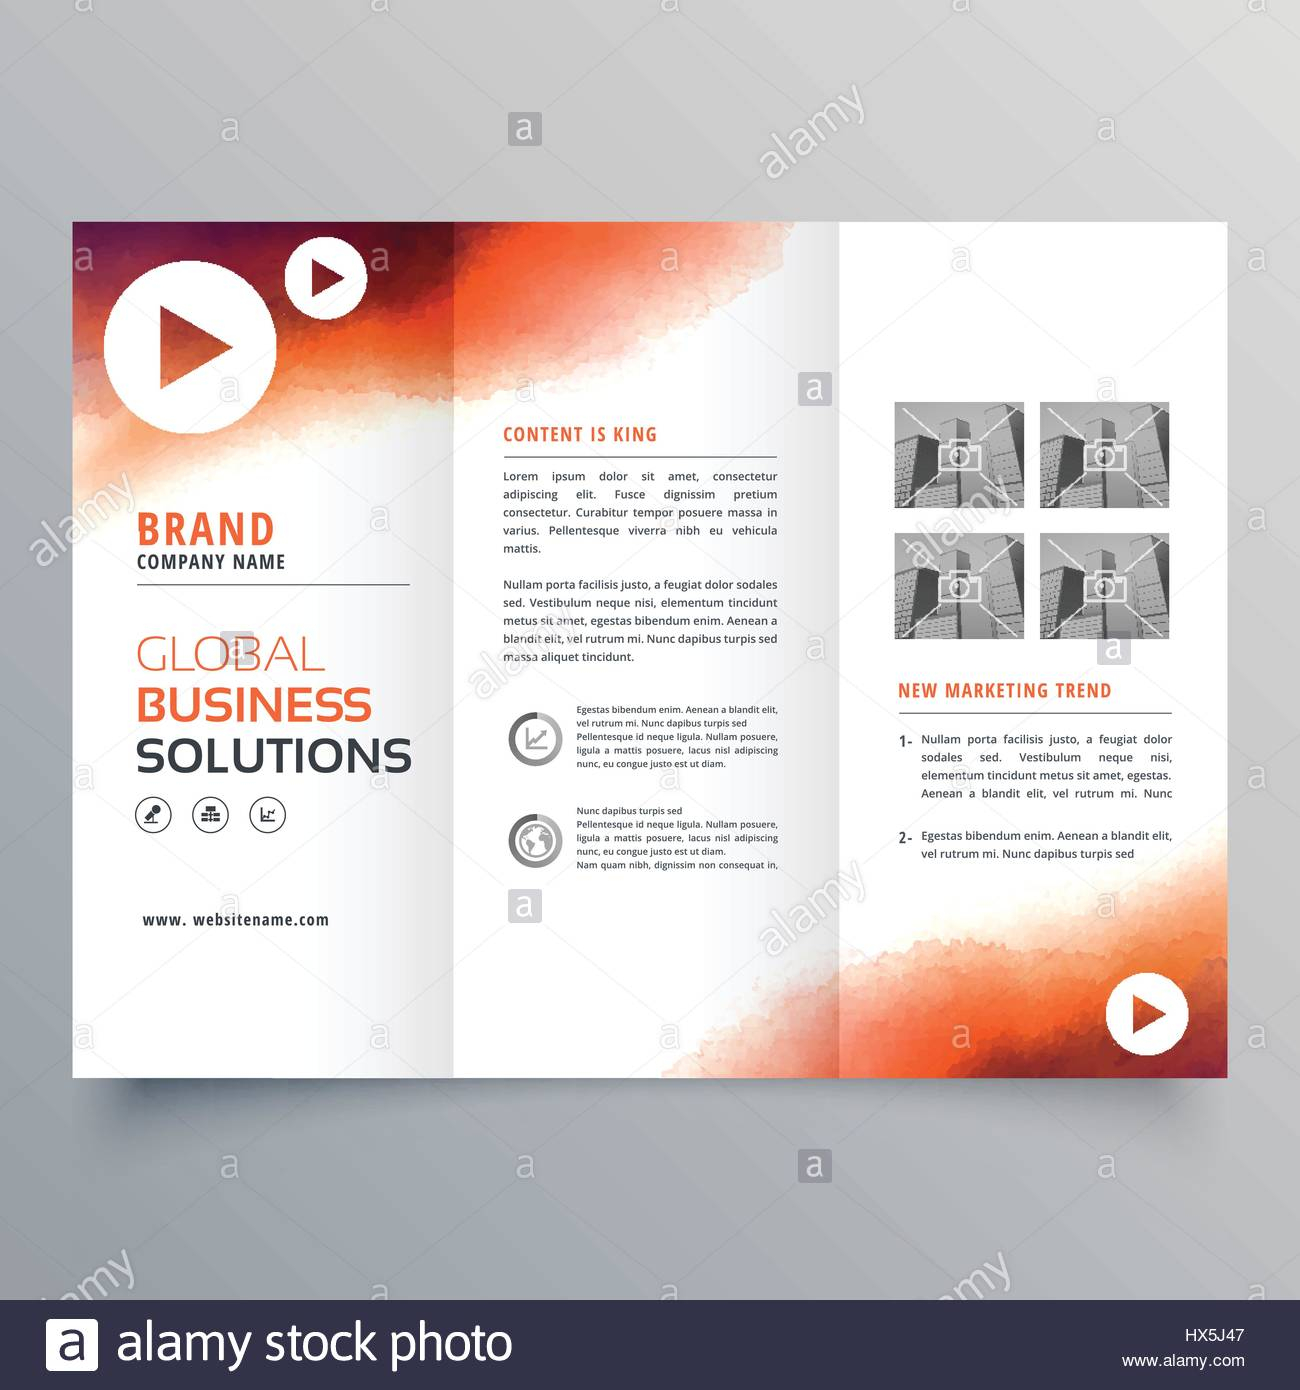 stylish trifold business brochure template made with orange ink